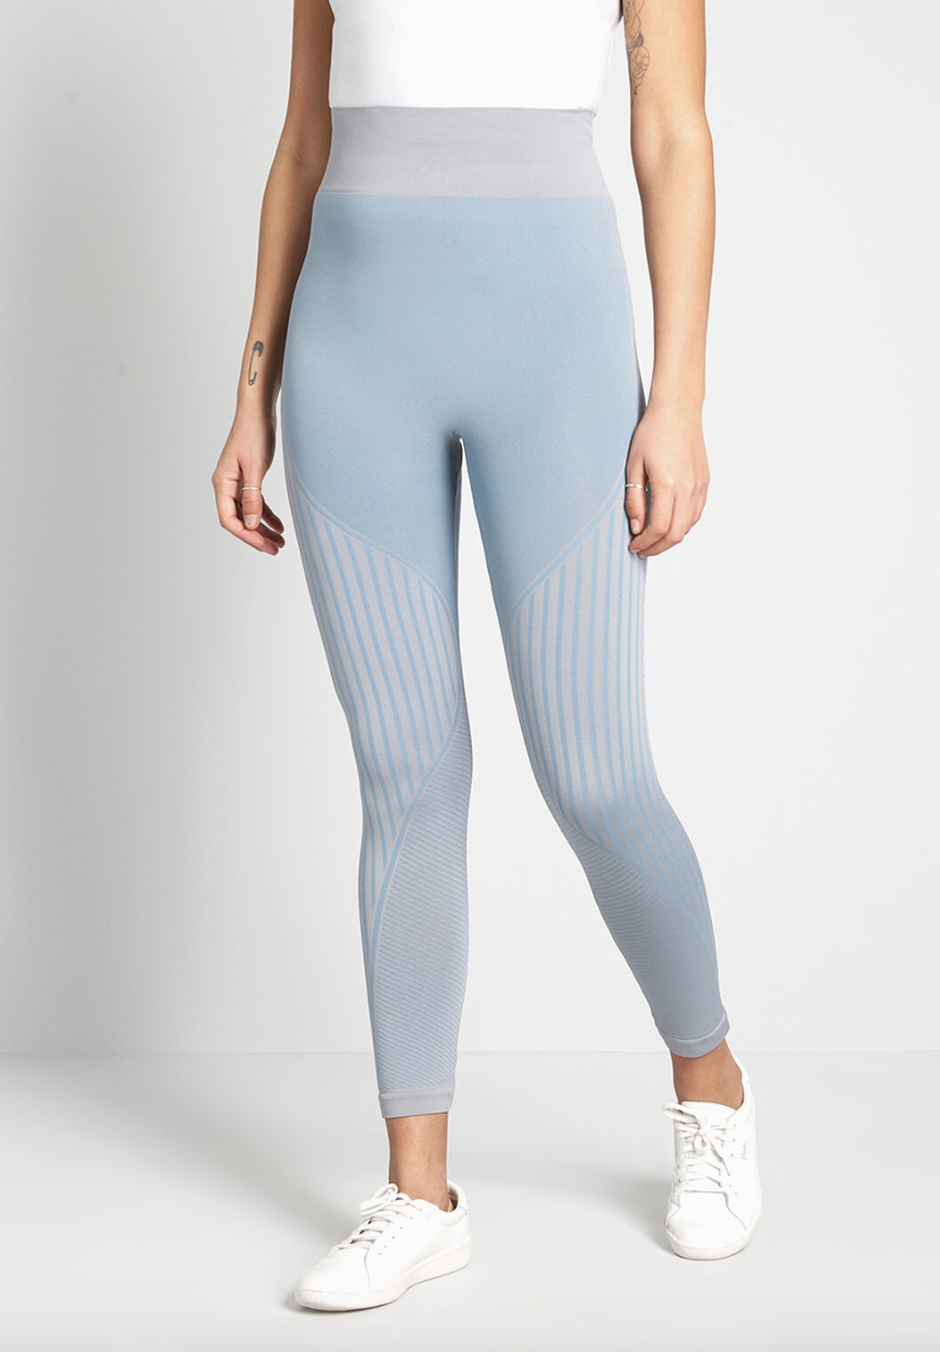 A model in the pale blue leggings, which have gray stripes and fall just above the ankle